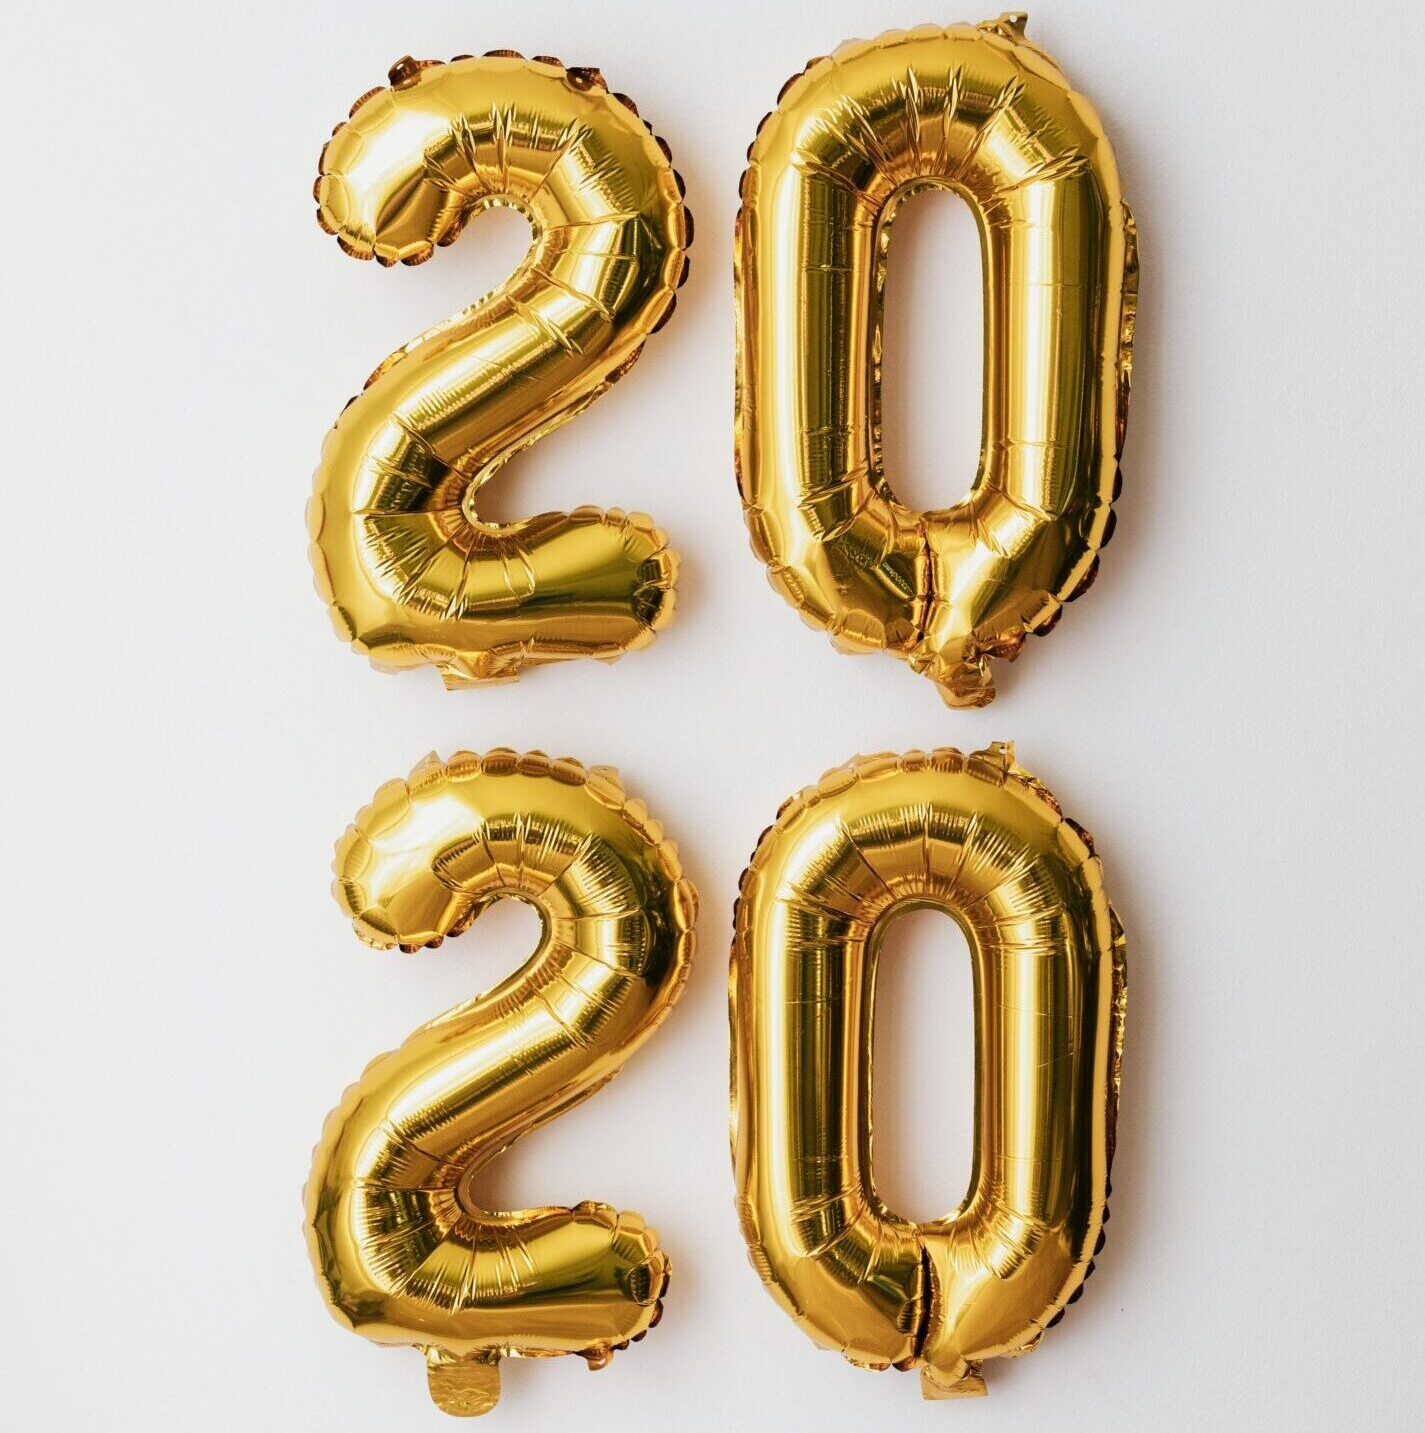 kaboompics_New Year's Eve - Golden balloons in the shape of the year 2020